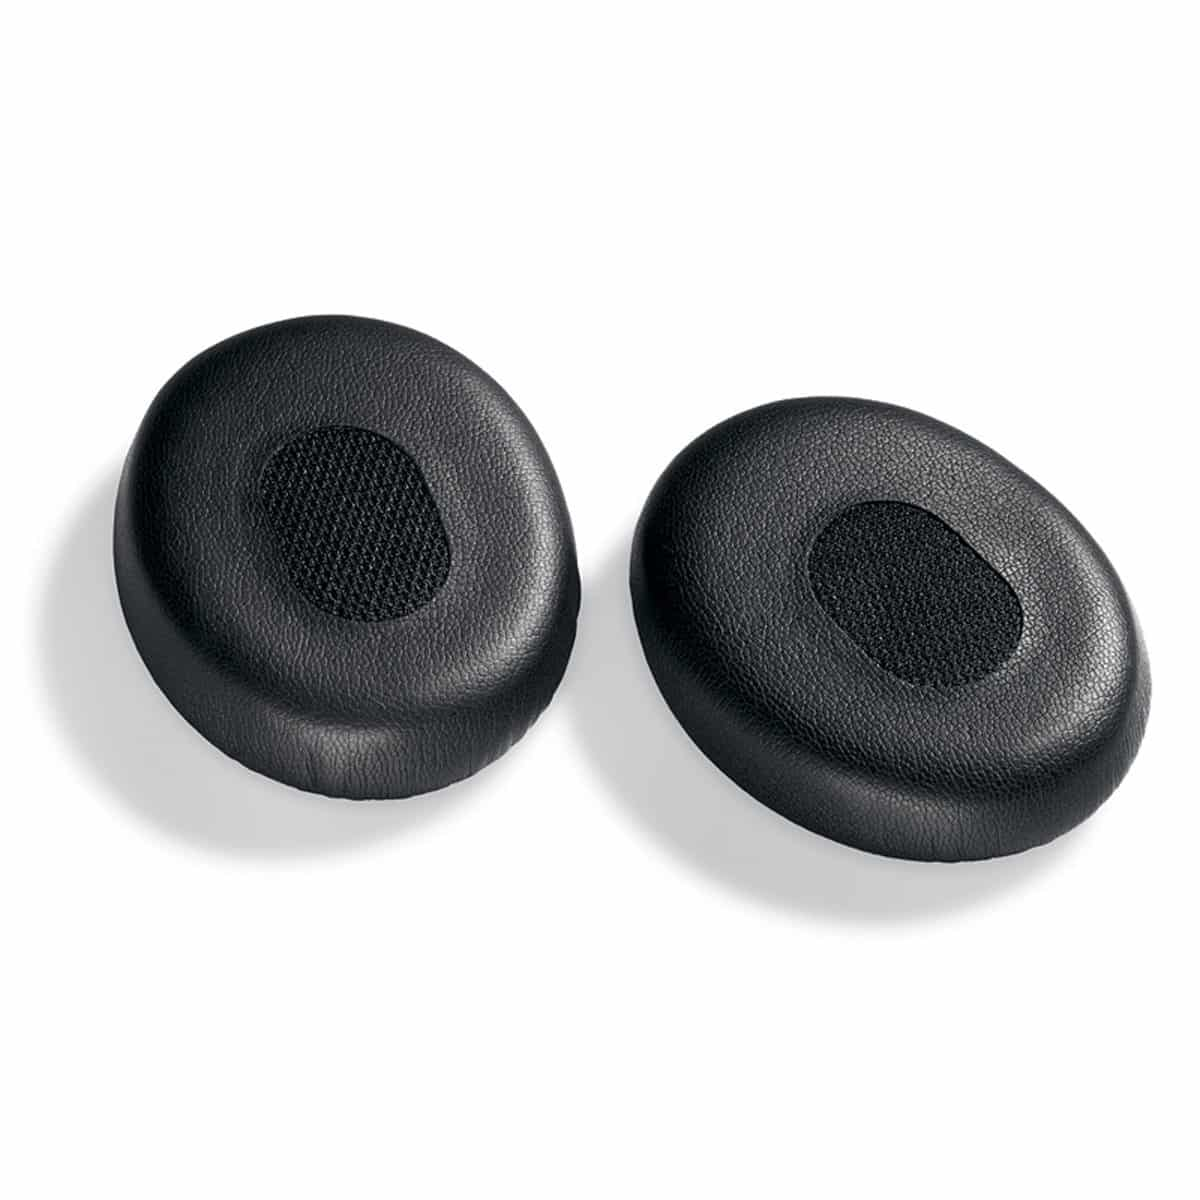 QC3 Ear Pads Black Colored